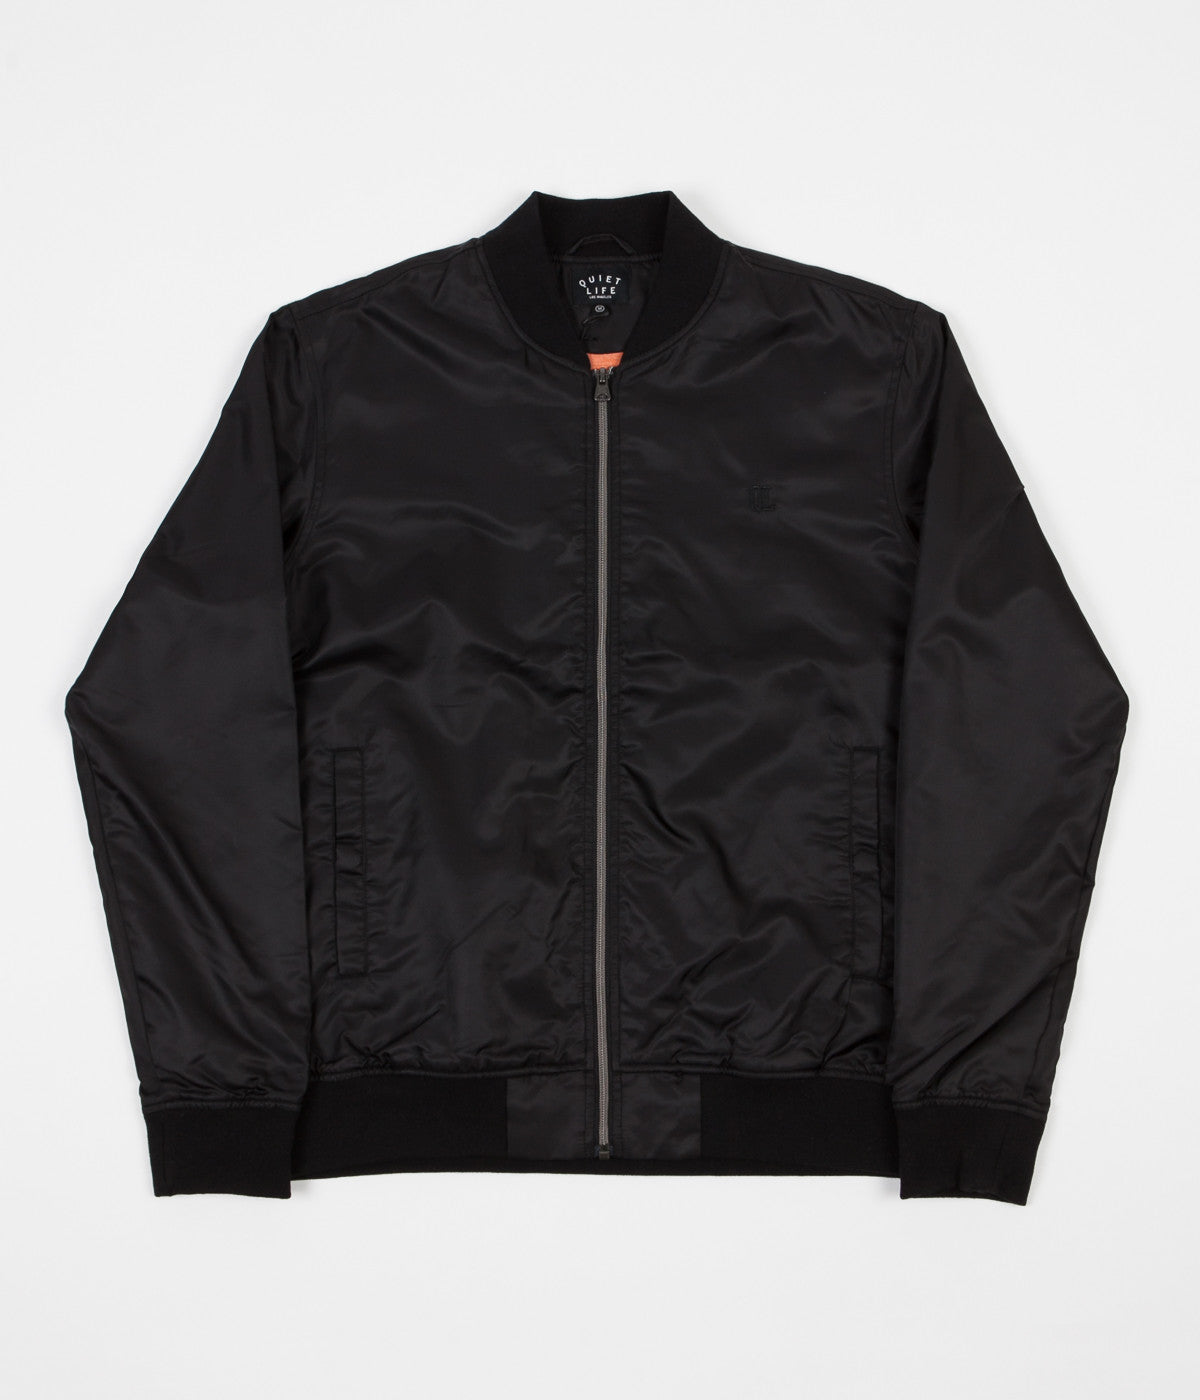 The Quiet Life Middle Of Nowhere Jacket - Black